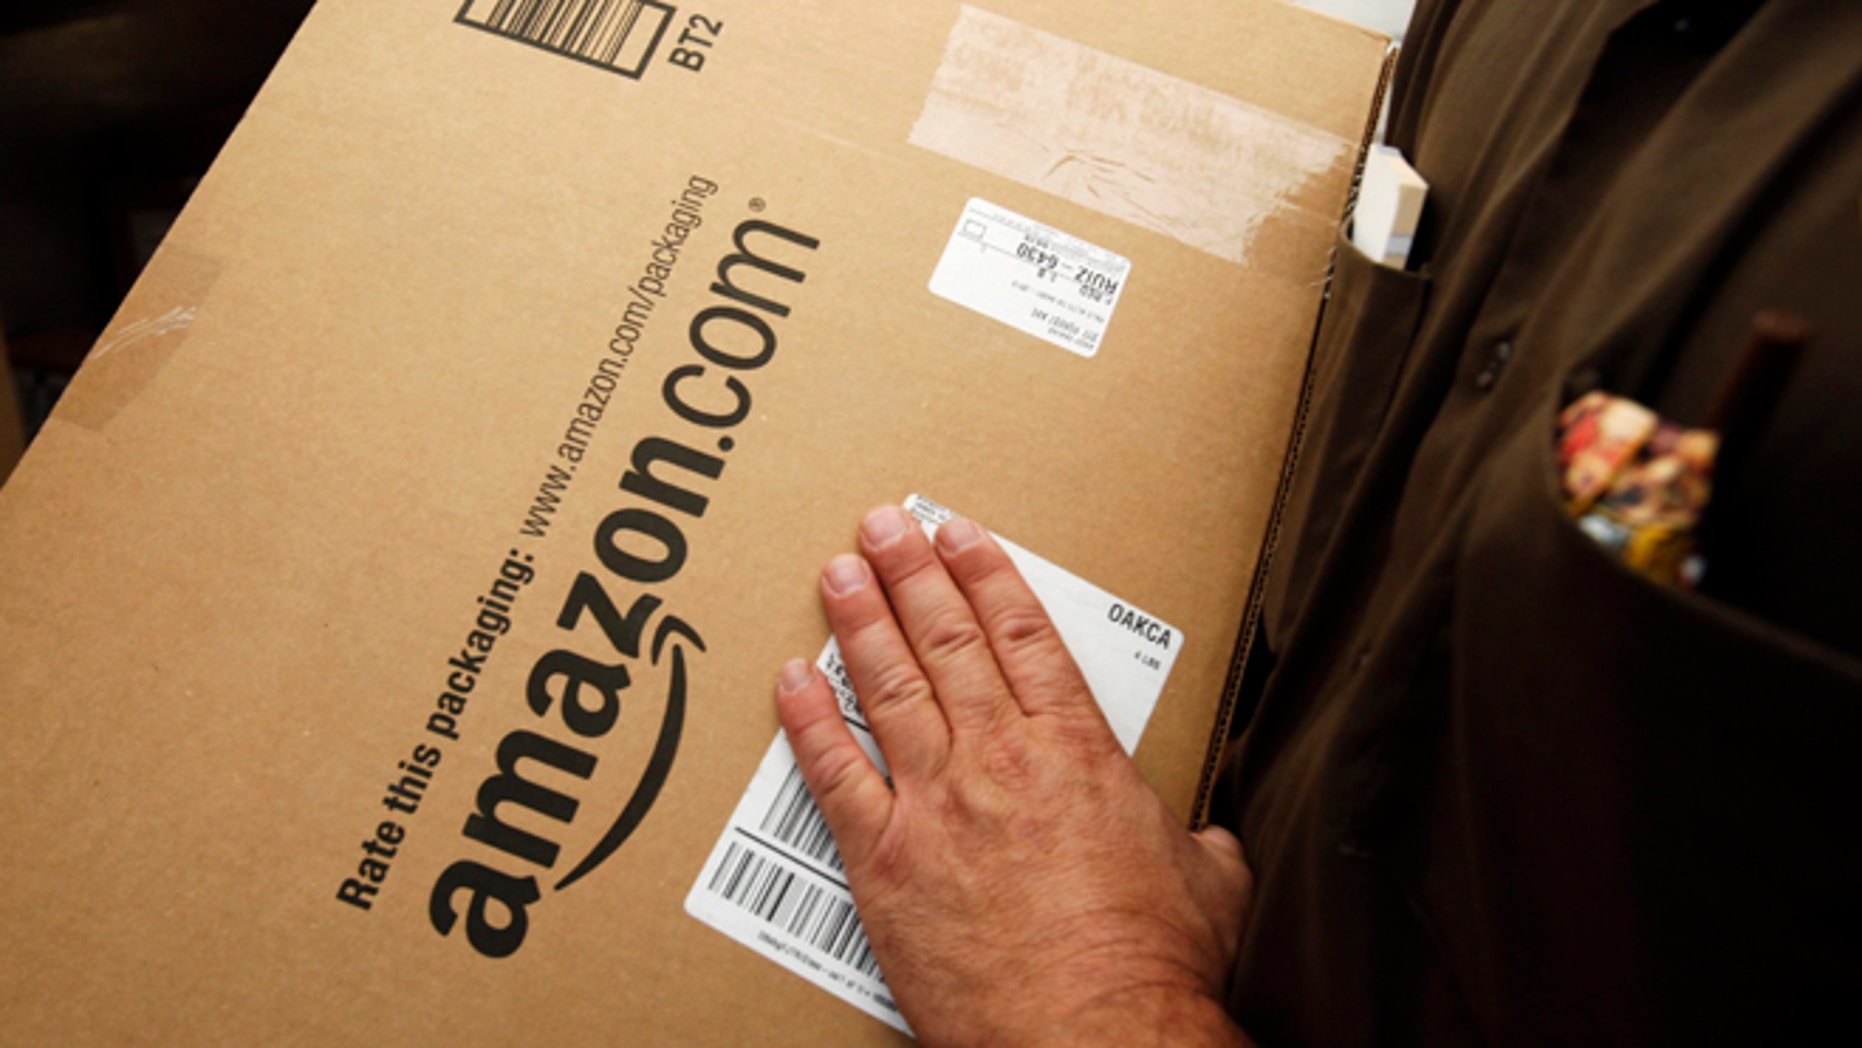 Amazon.com plans a few new gadgets to expand the Kindle lineup, including a model with a 3D screen.